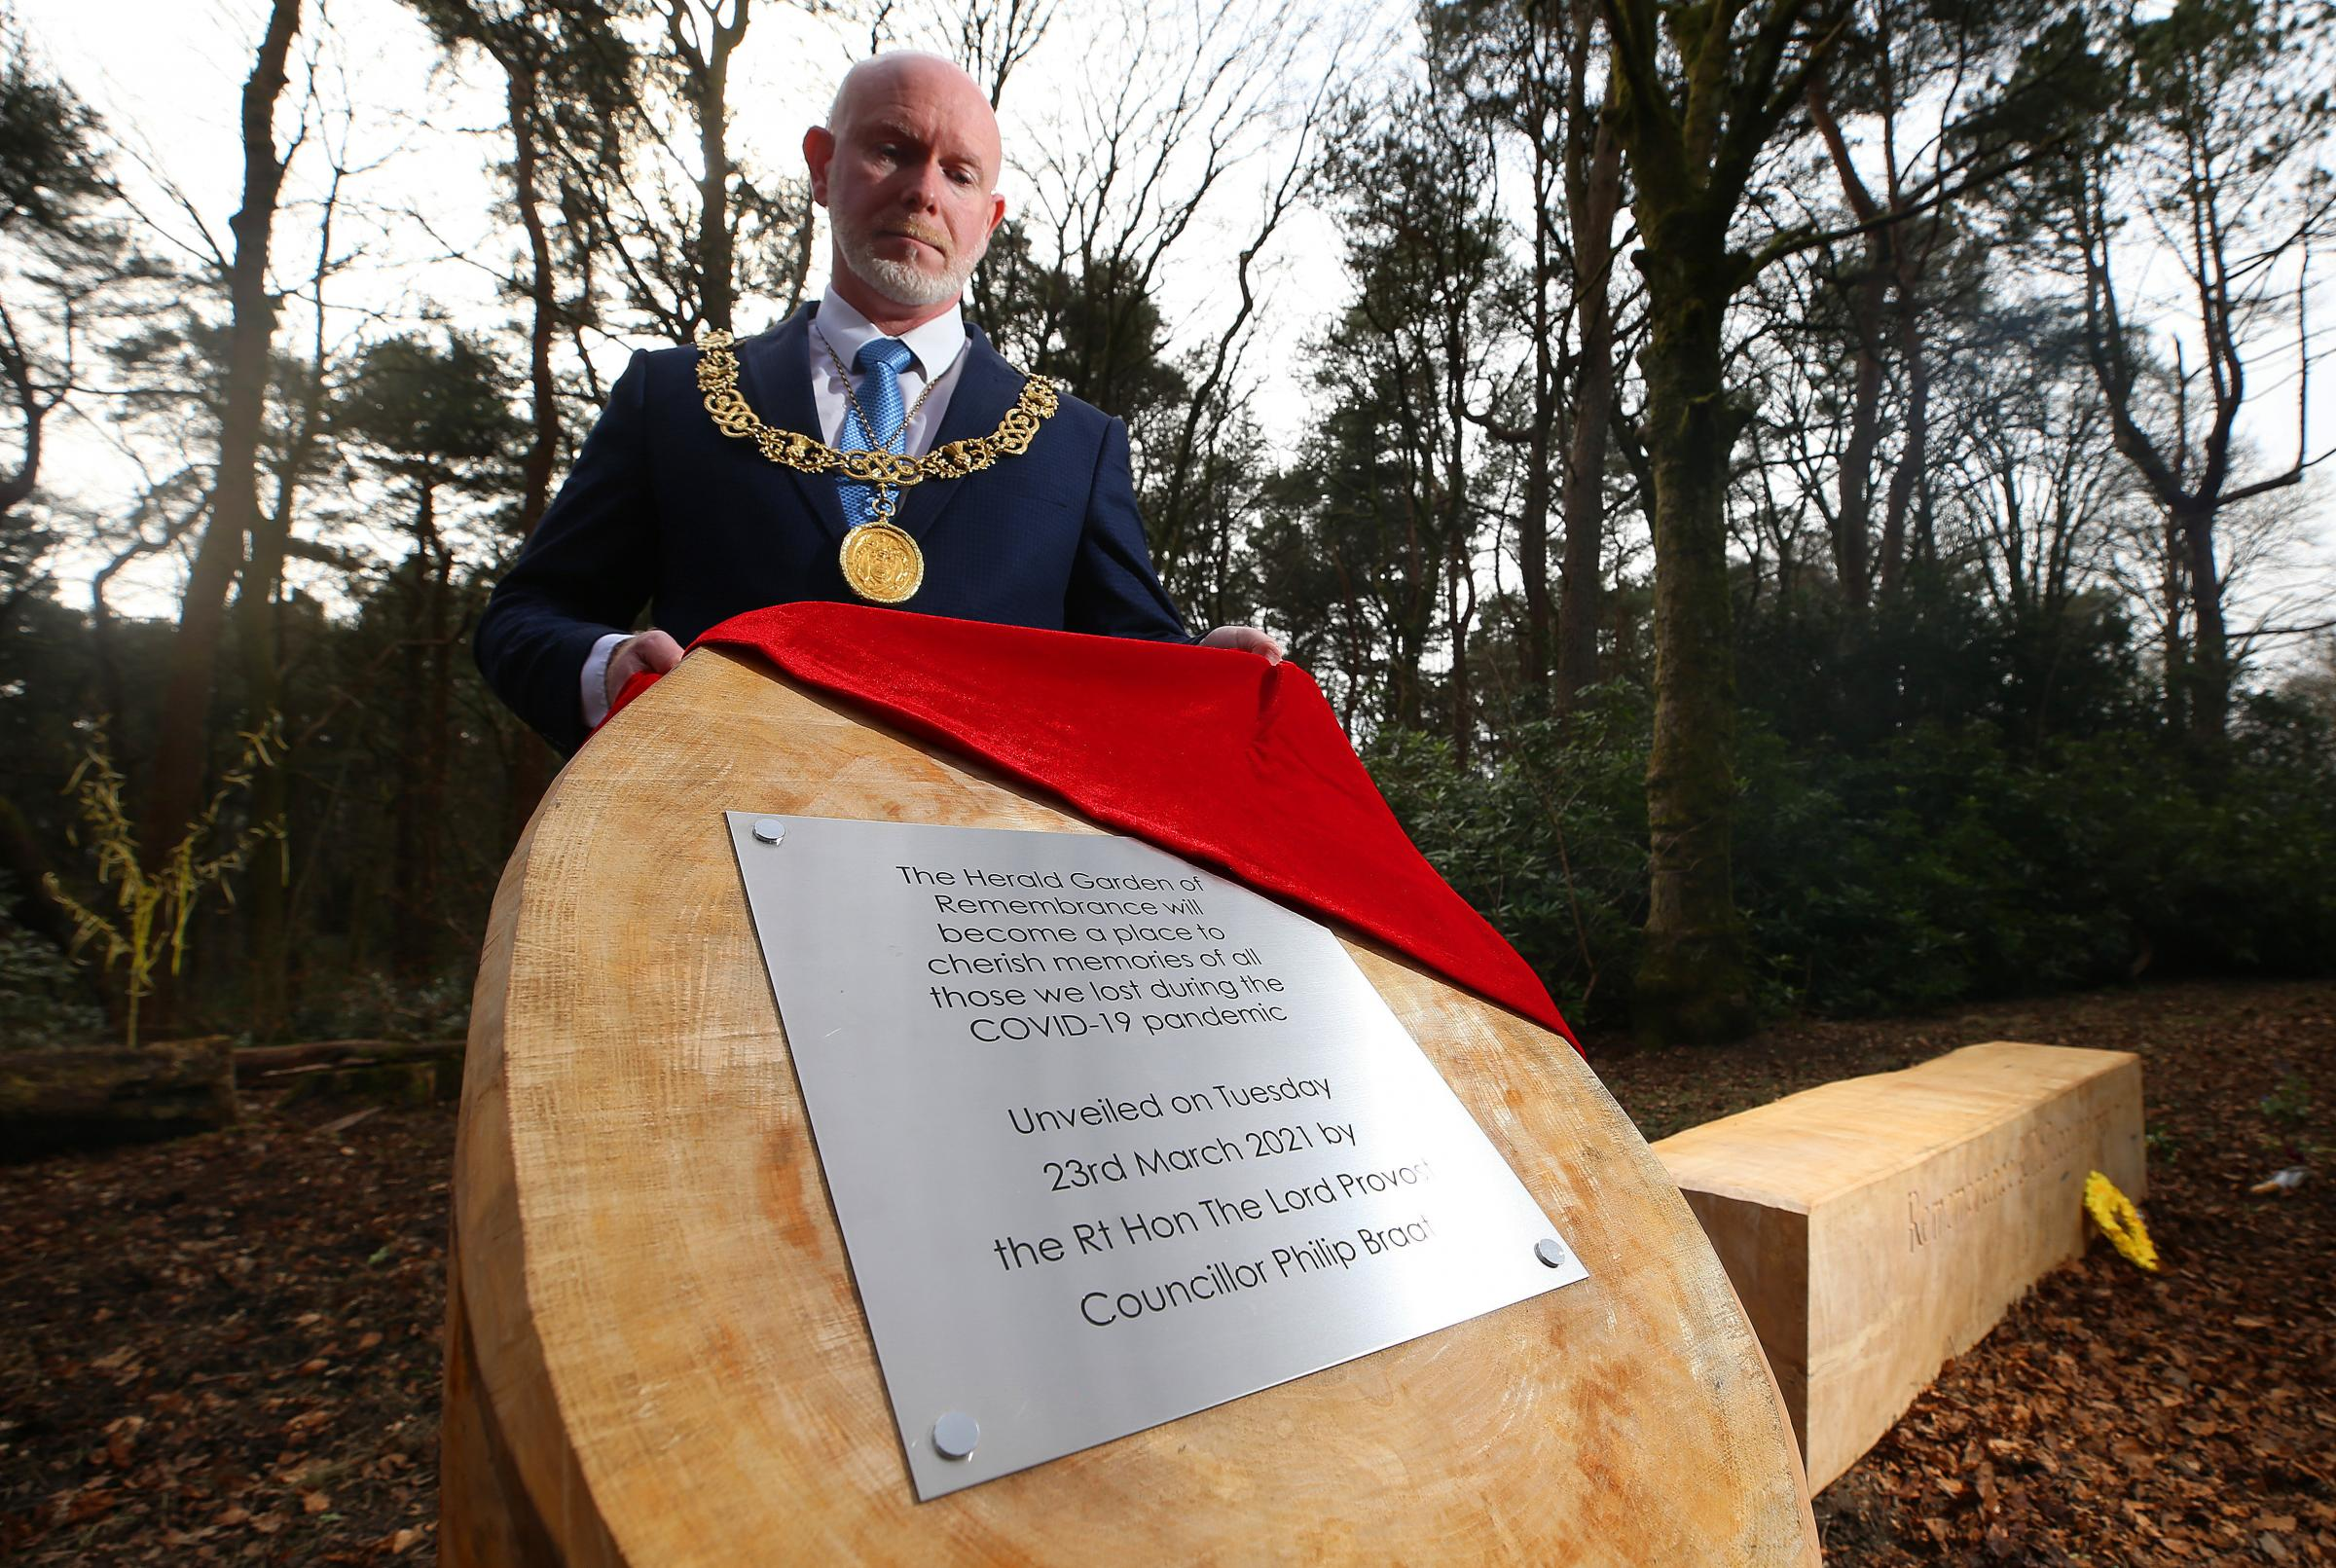 The plaque unvieled by Lord Provost of Glasgow Philip Braat in Pollok Country Park, was taken within hours